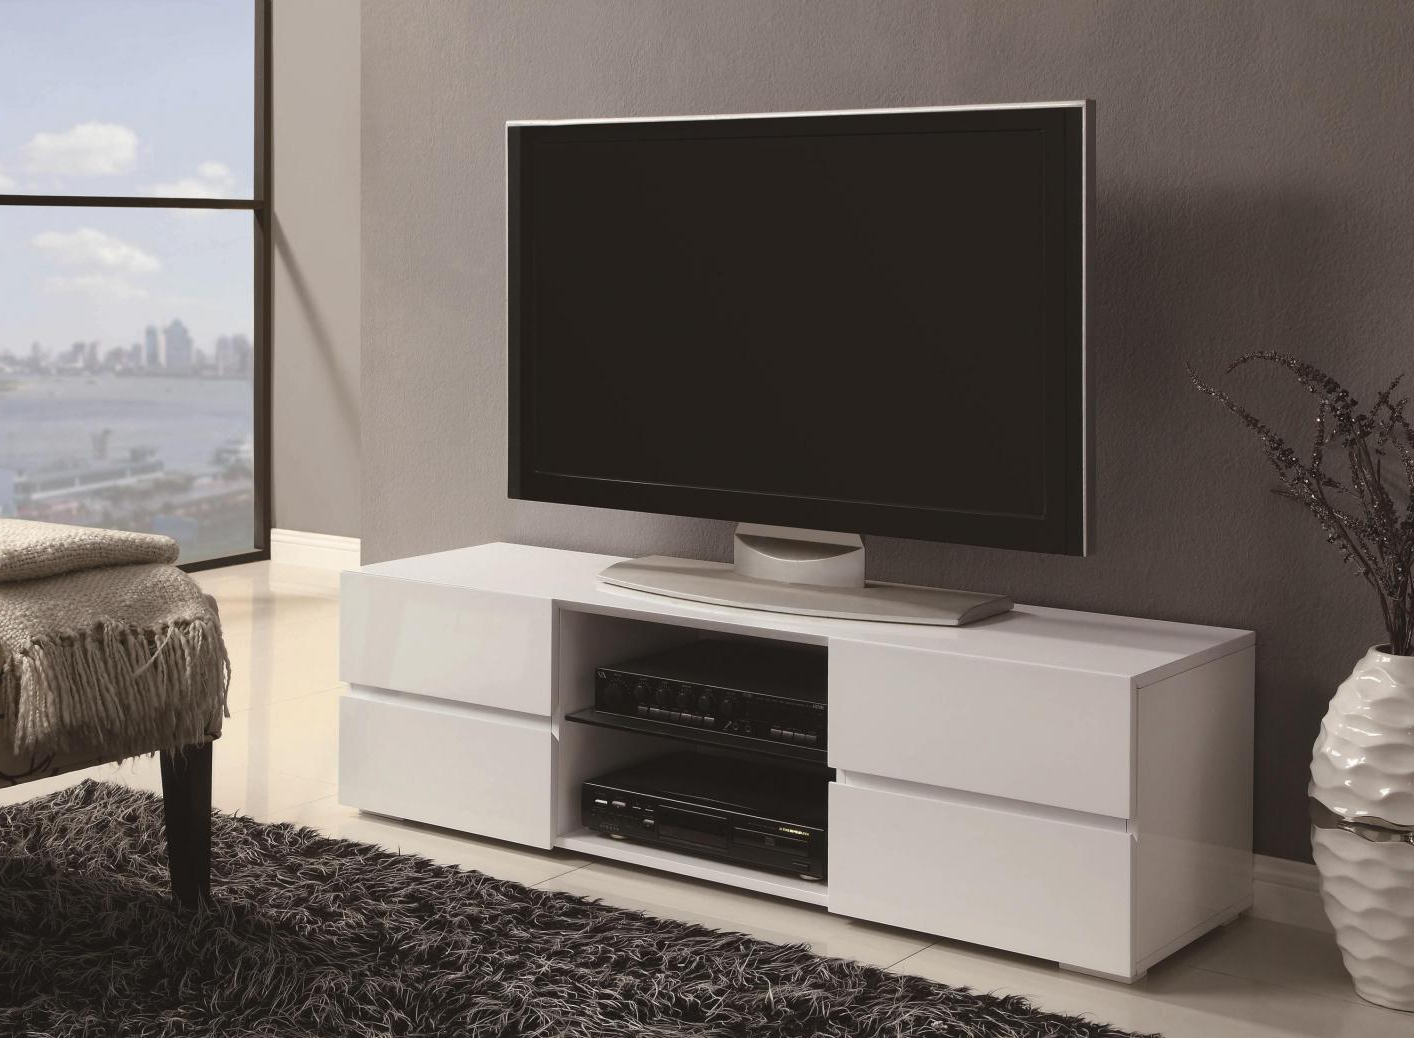 Preferred White And Wood Tv Stands Inside White Wood Tv Stand – Steal A Sofa Furniture Outlet Los Angeles Ca (View 7 of 20)